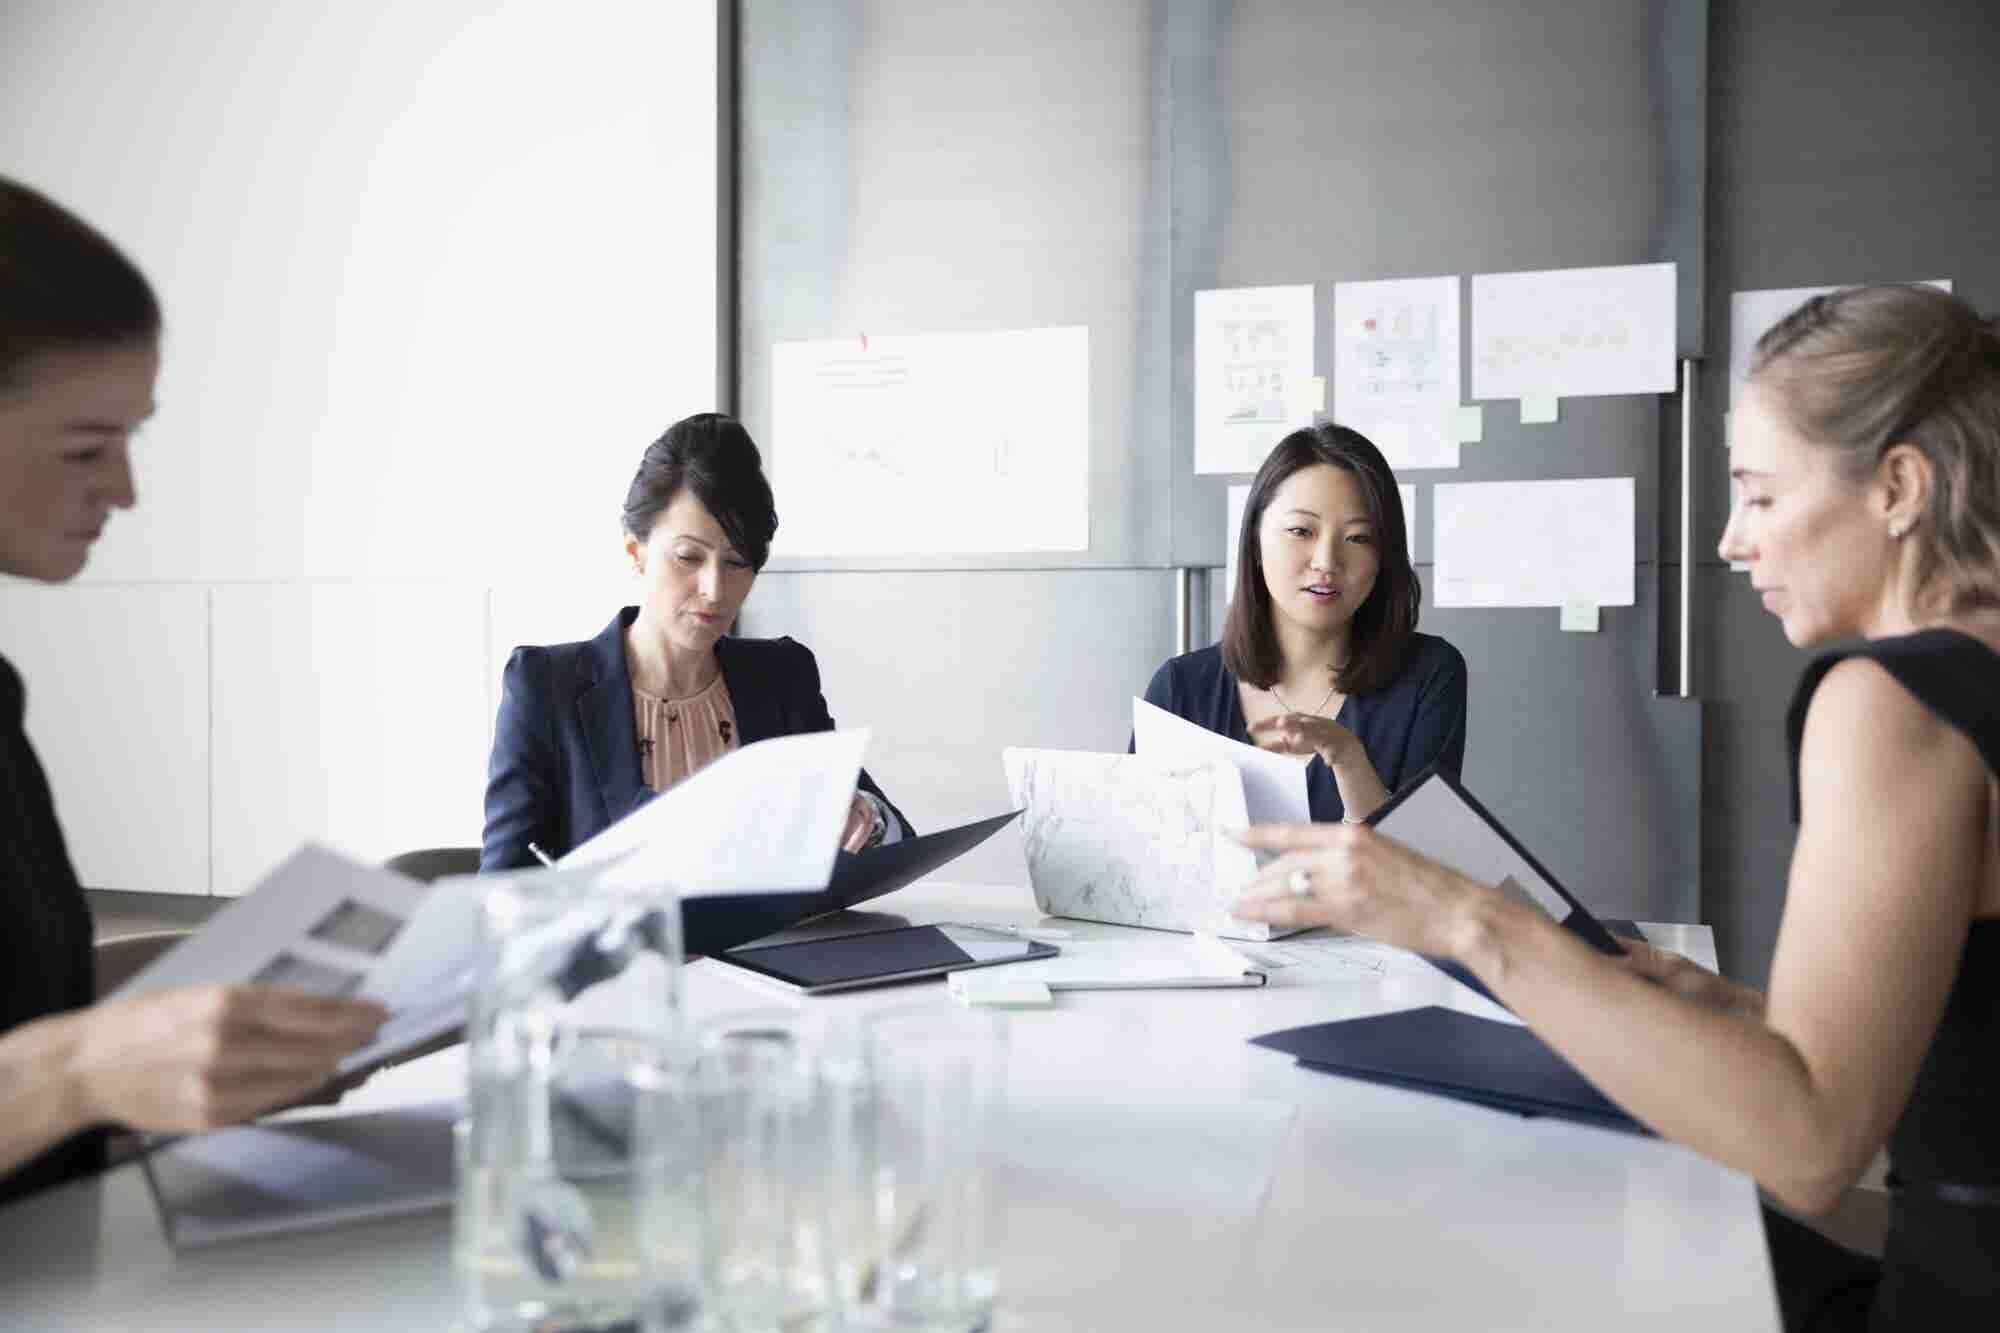 7 Women Investors Reveal What's Different When a Woman Evaluates Your Pitch